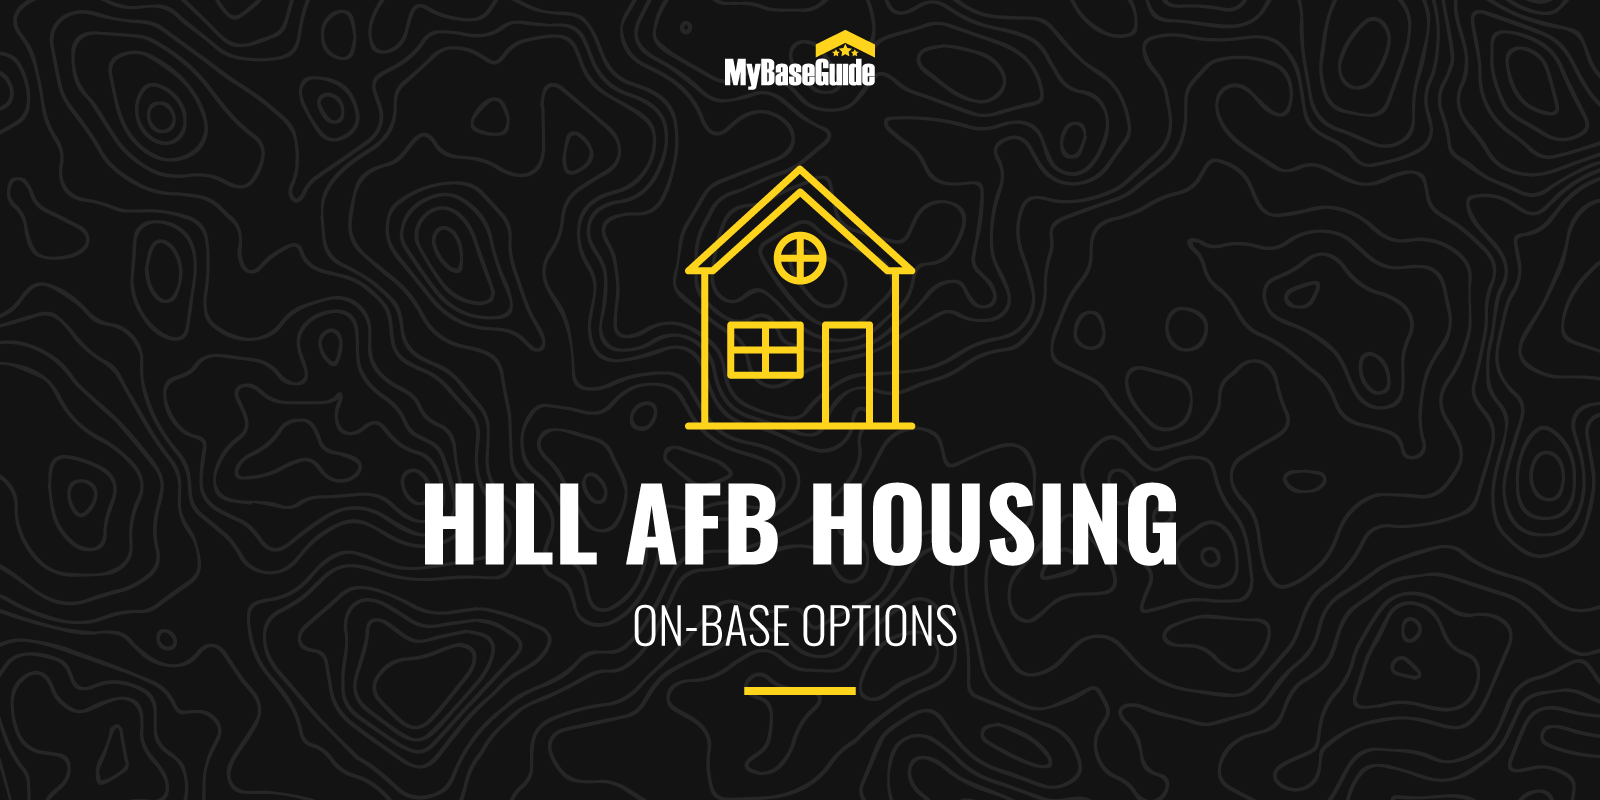 Hill AFB Housing: On-Base Options